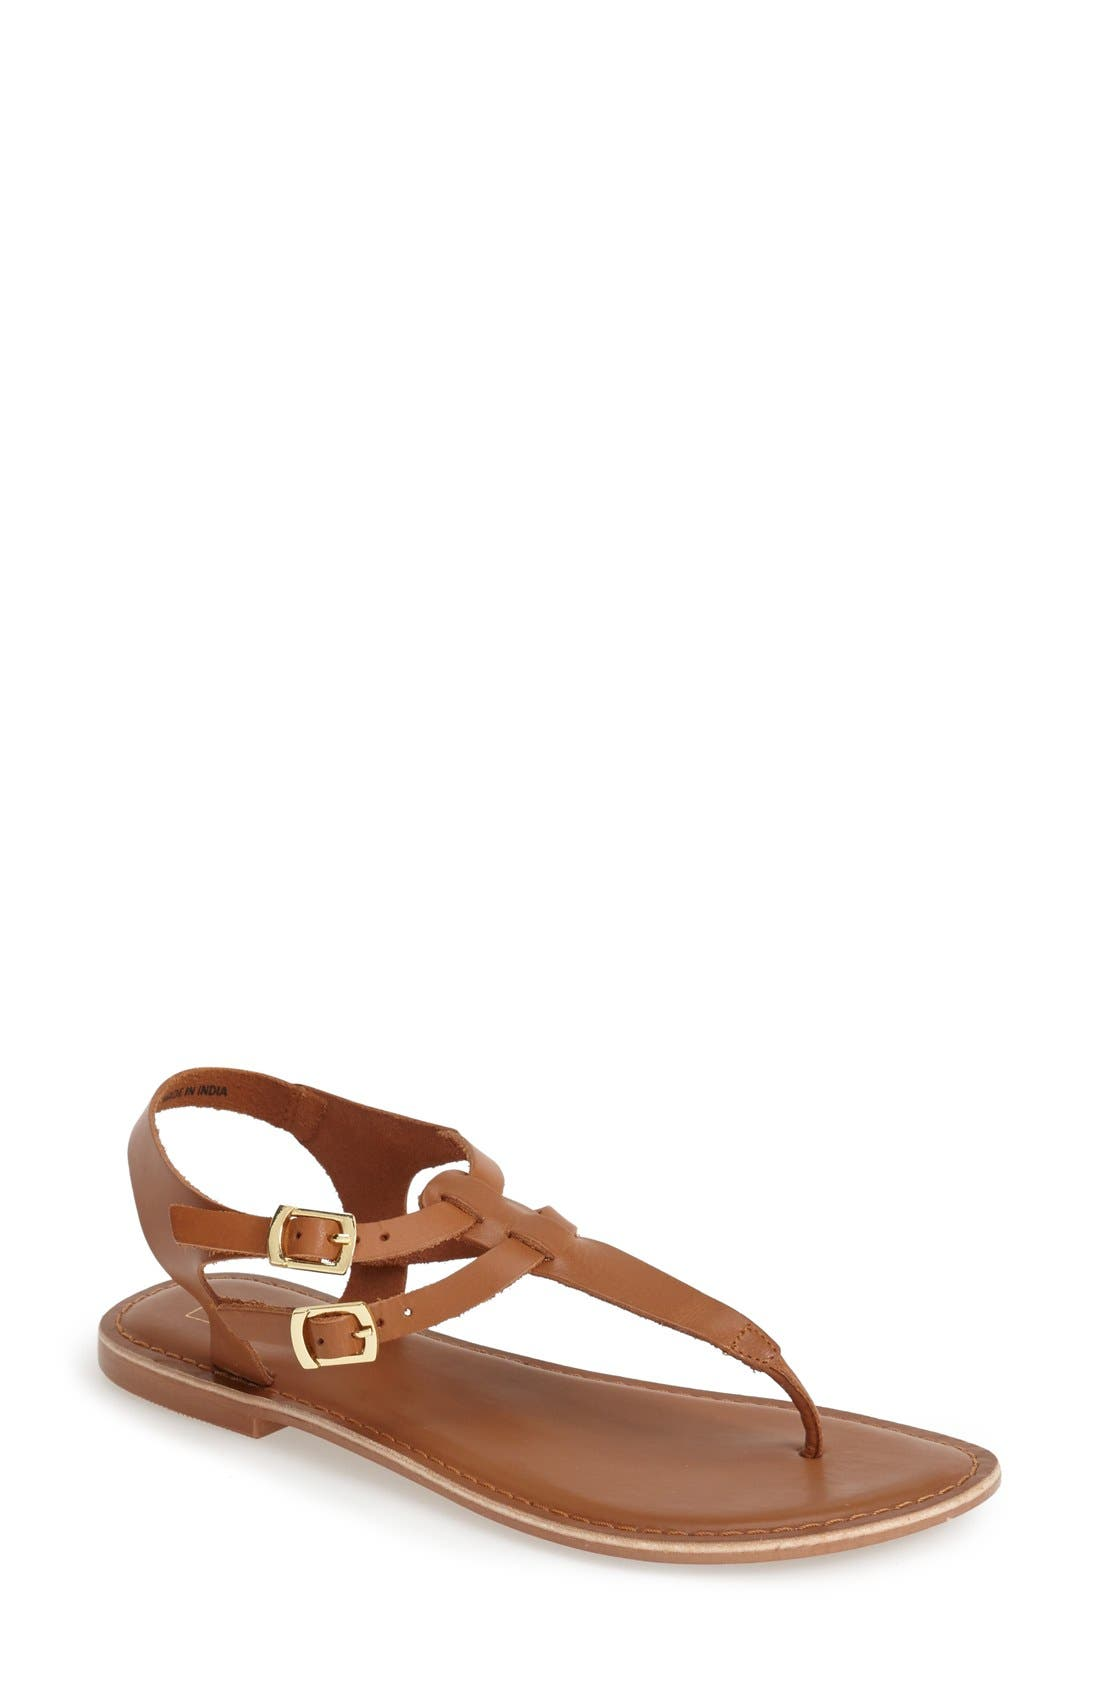 Alternate Image 1 Selected - Topshop 'Harbour' Strappy Leather Thong Sandal (Women)